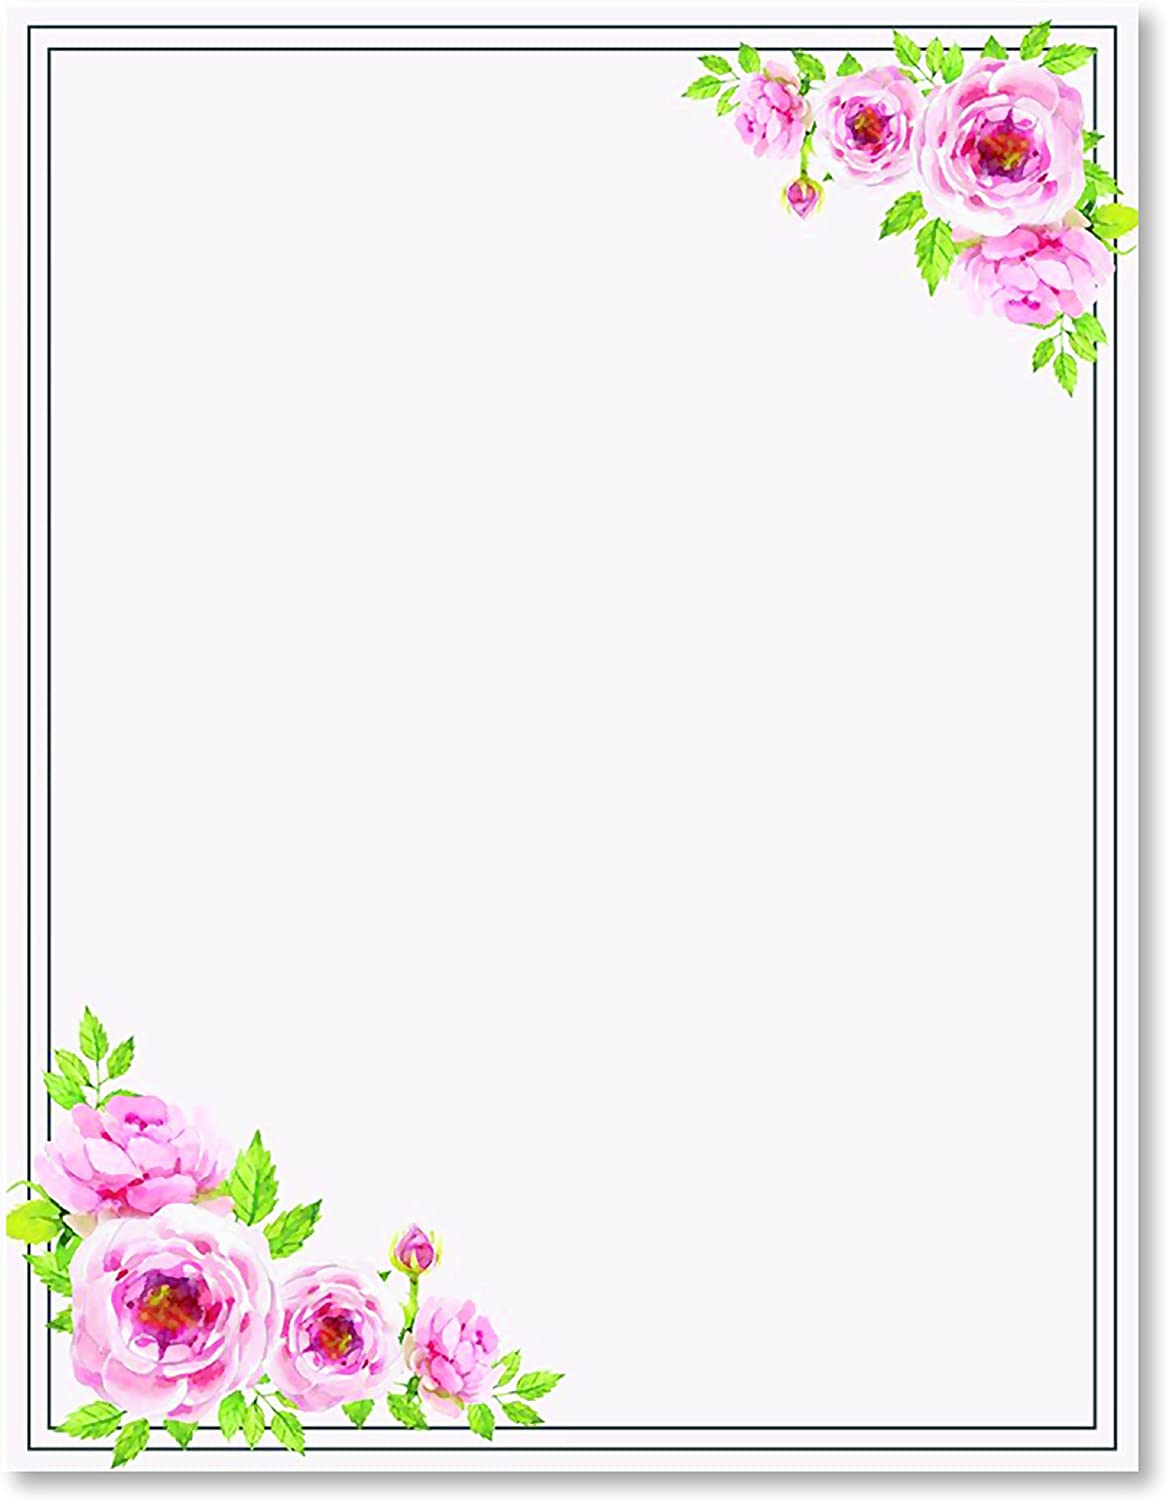 100 Stationery Writing Paper, with Cute Floral Designs Perfect for Notes or  Letter Writing - Pink Roses